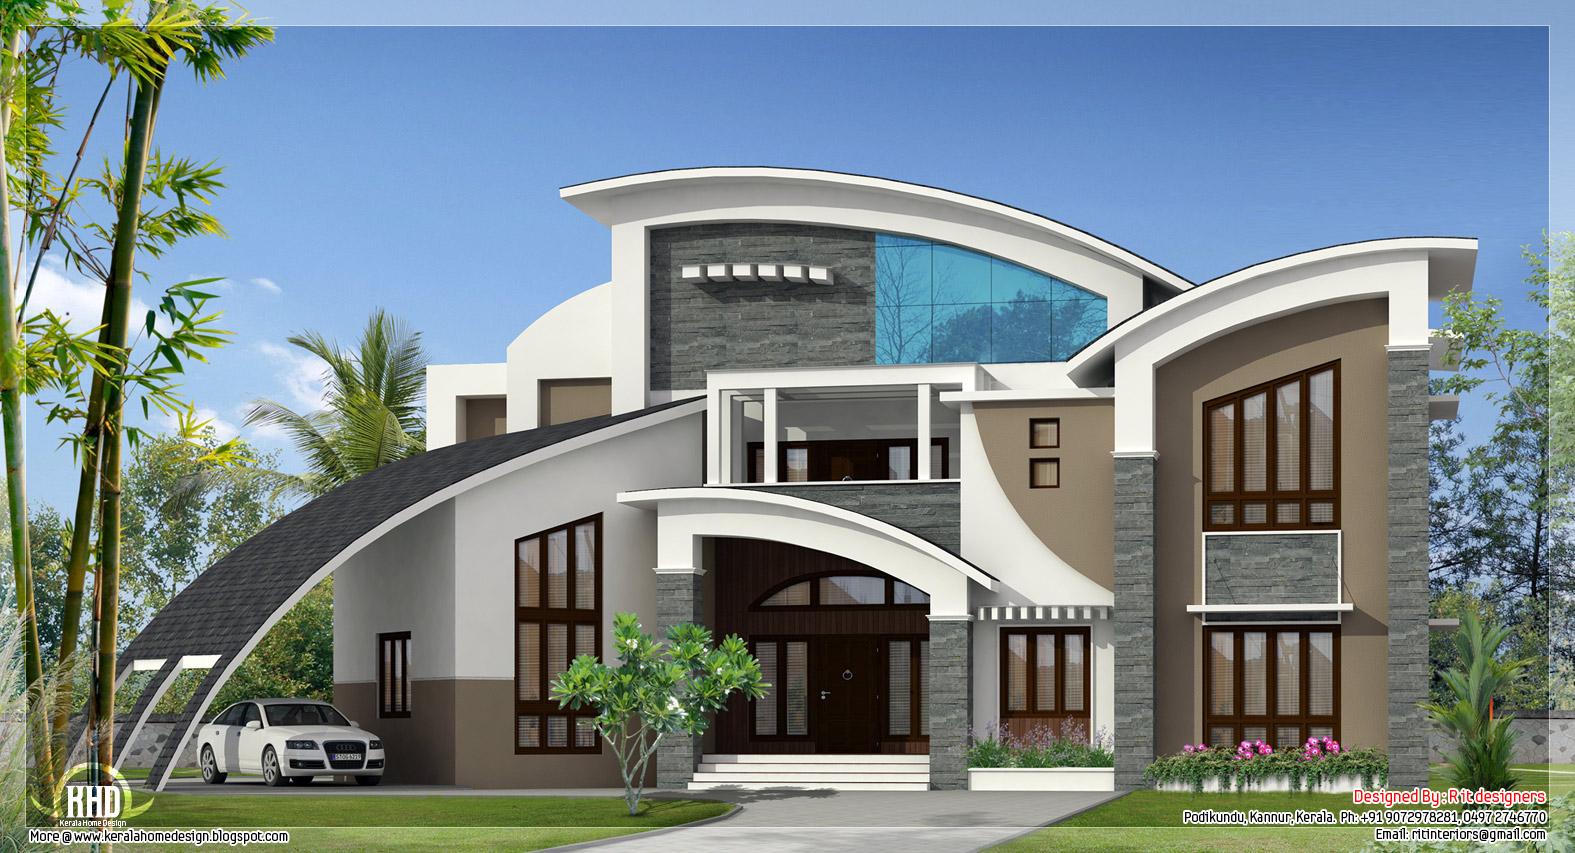 4 bedroom modern flat roof house keralahousedesigns for Architecture and design